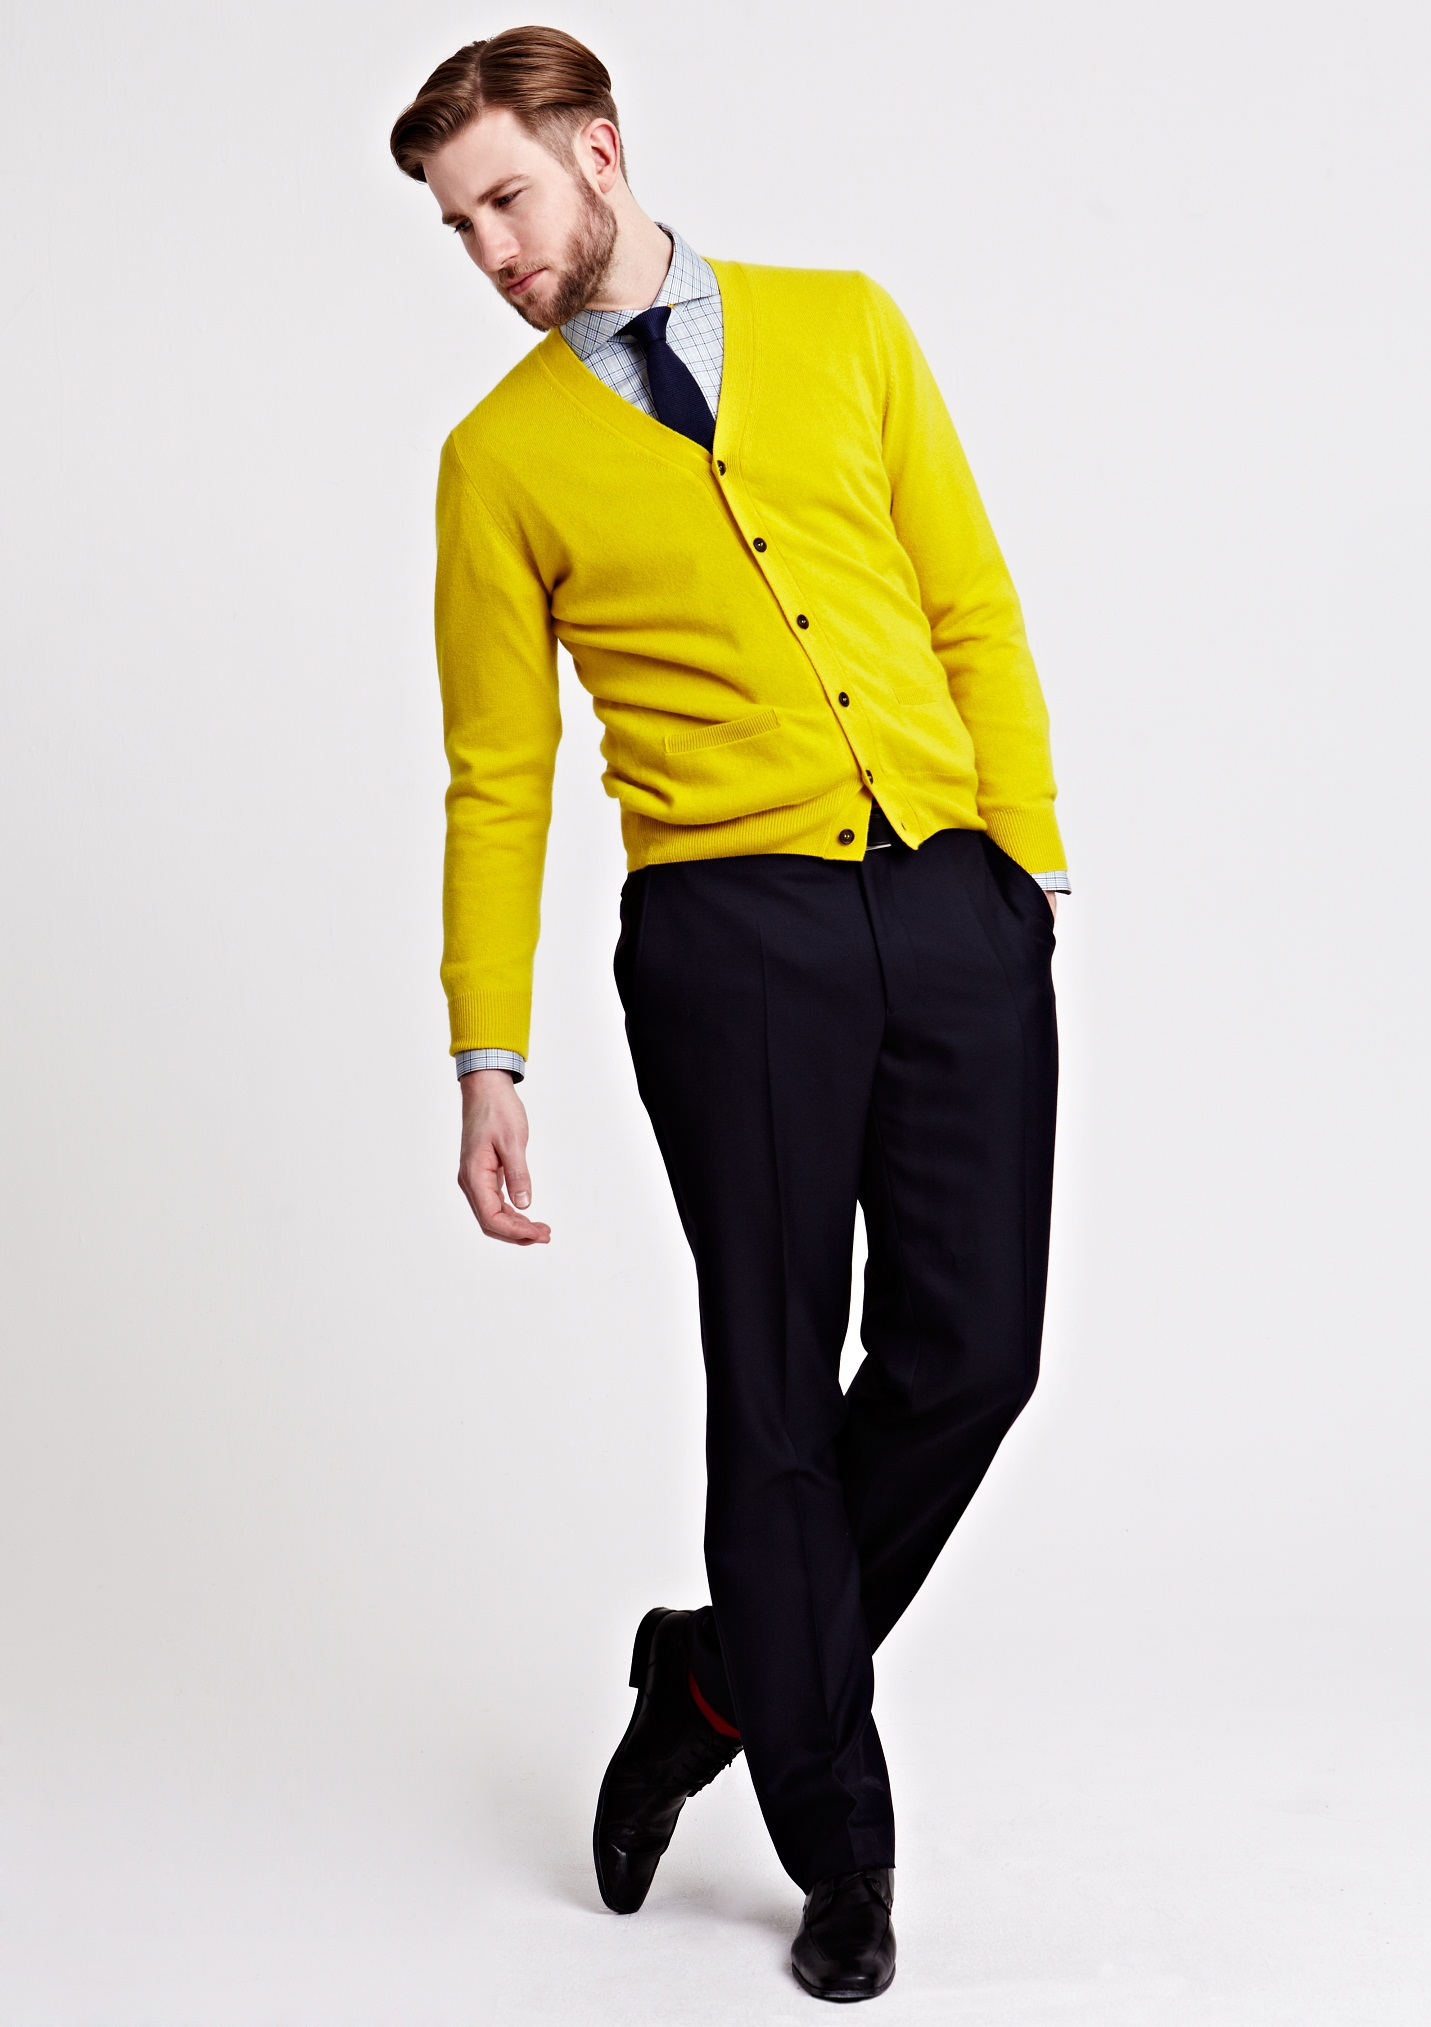 Bright Colors for Thomas Pink Autumn/Winter 2013 ...